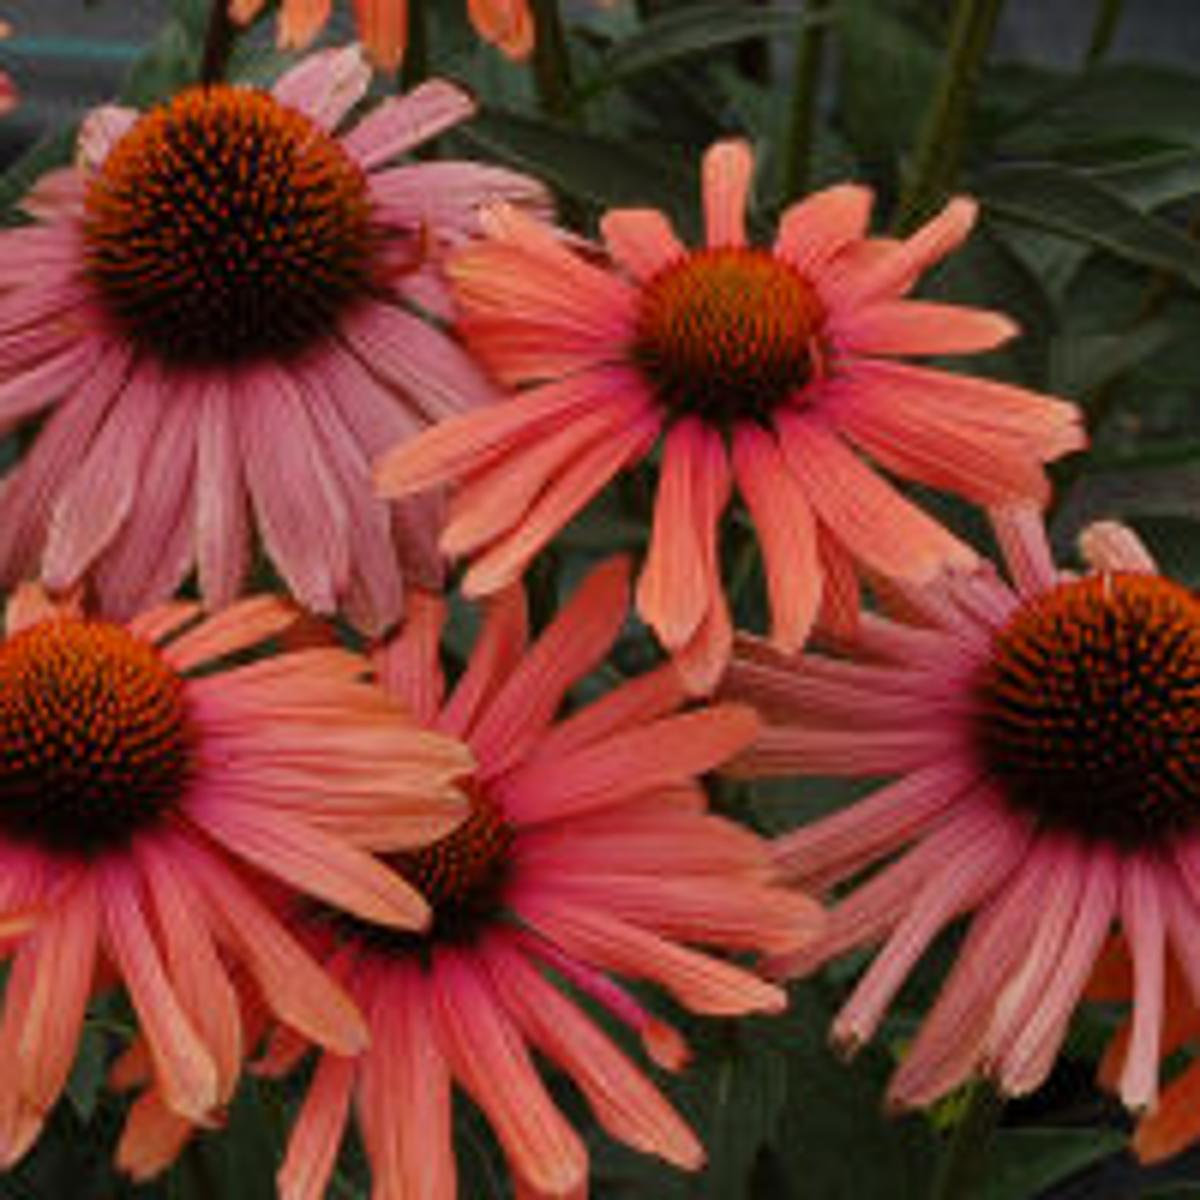 Local Experts Discuss Their Favorite Plants For Spring